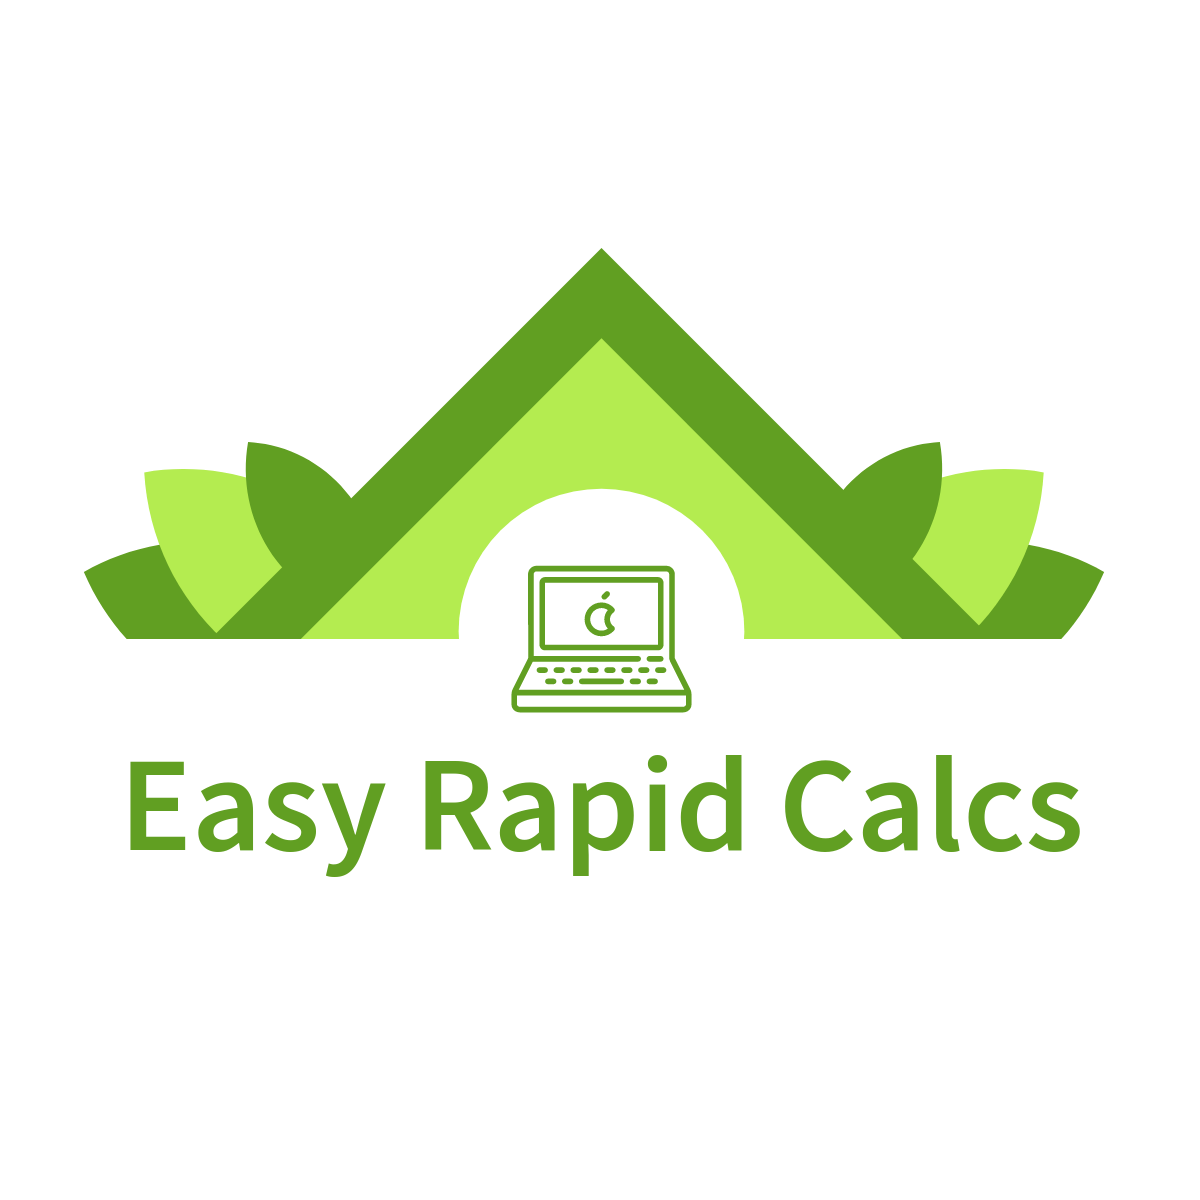 Easy Rapid Calcs